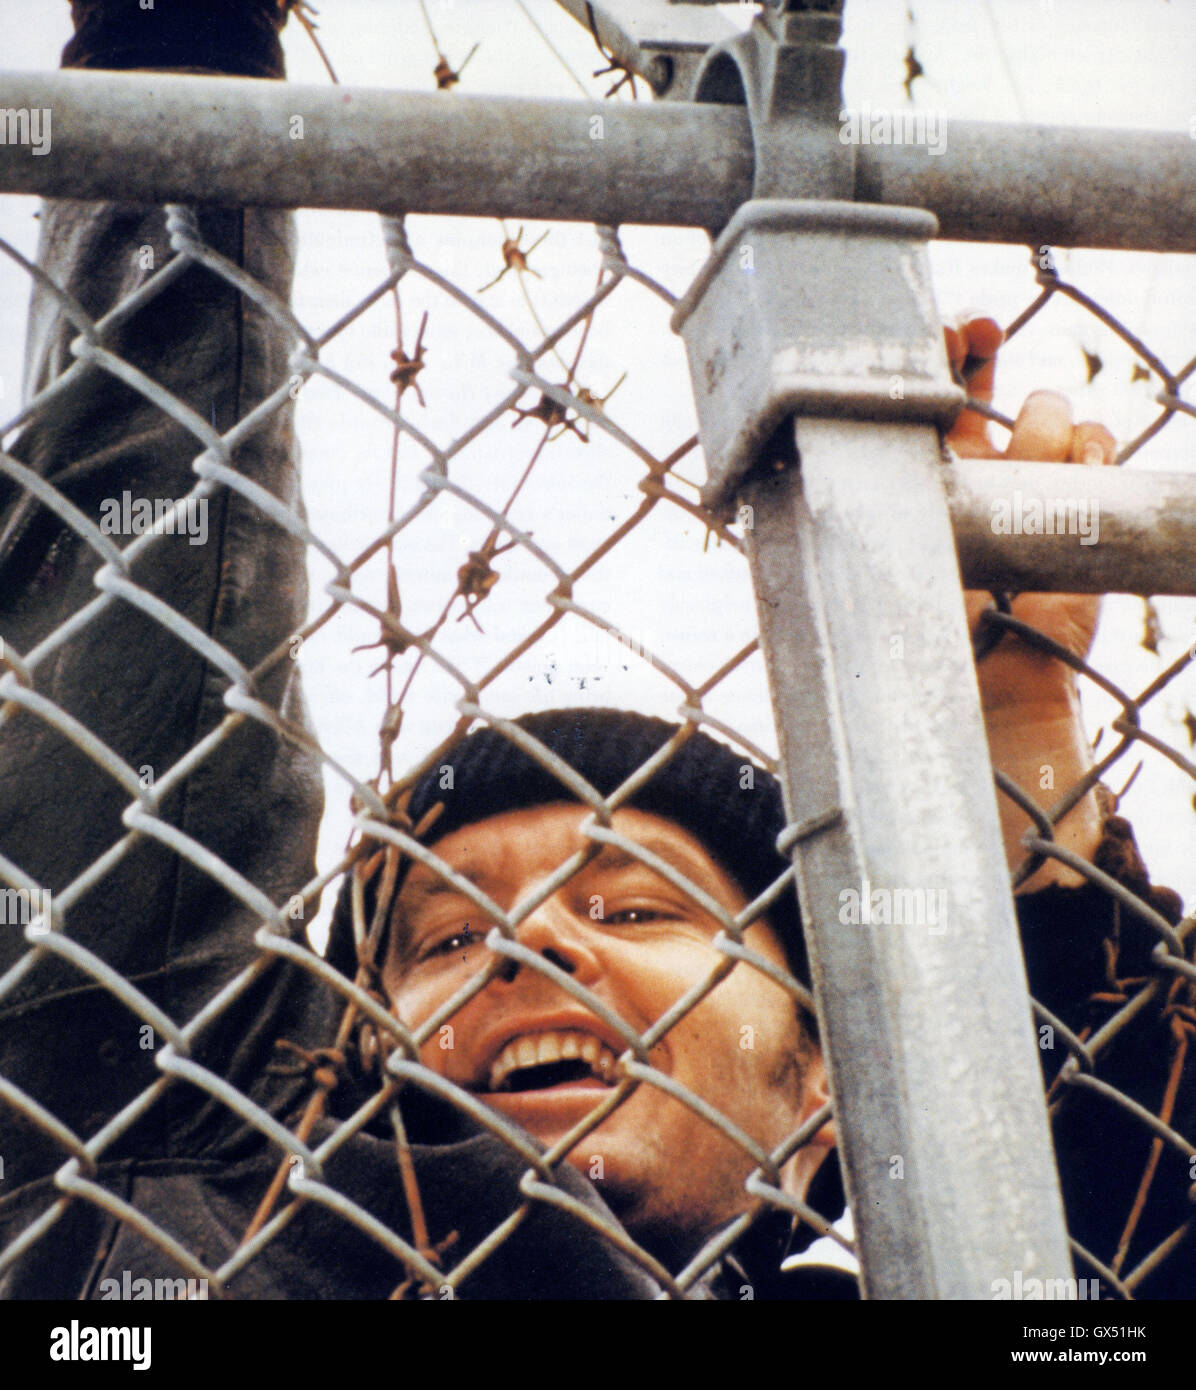 ONE FKLEW OVER THE CUCKOO'S NEST 1975 United Artists film with Jack Nicholson - Stock Image